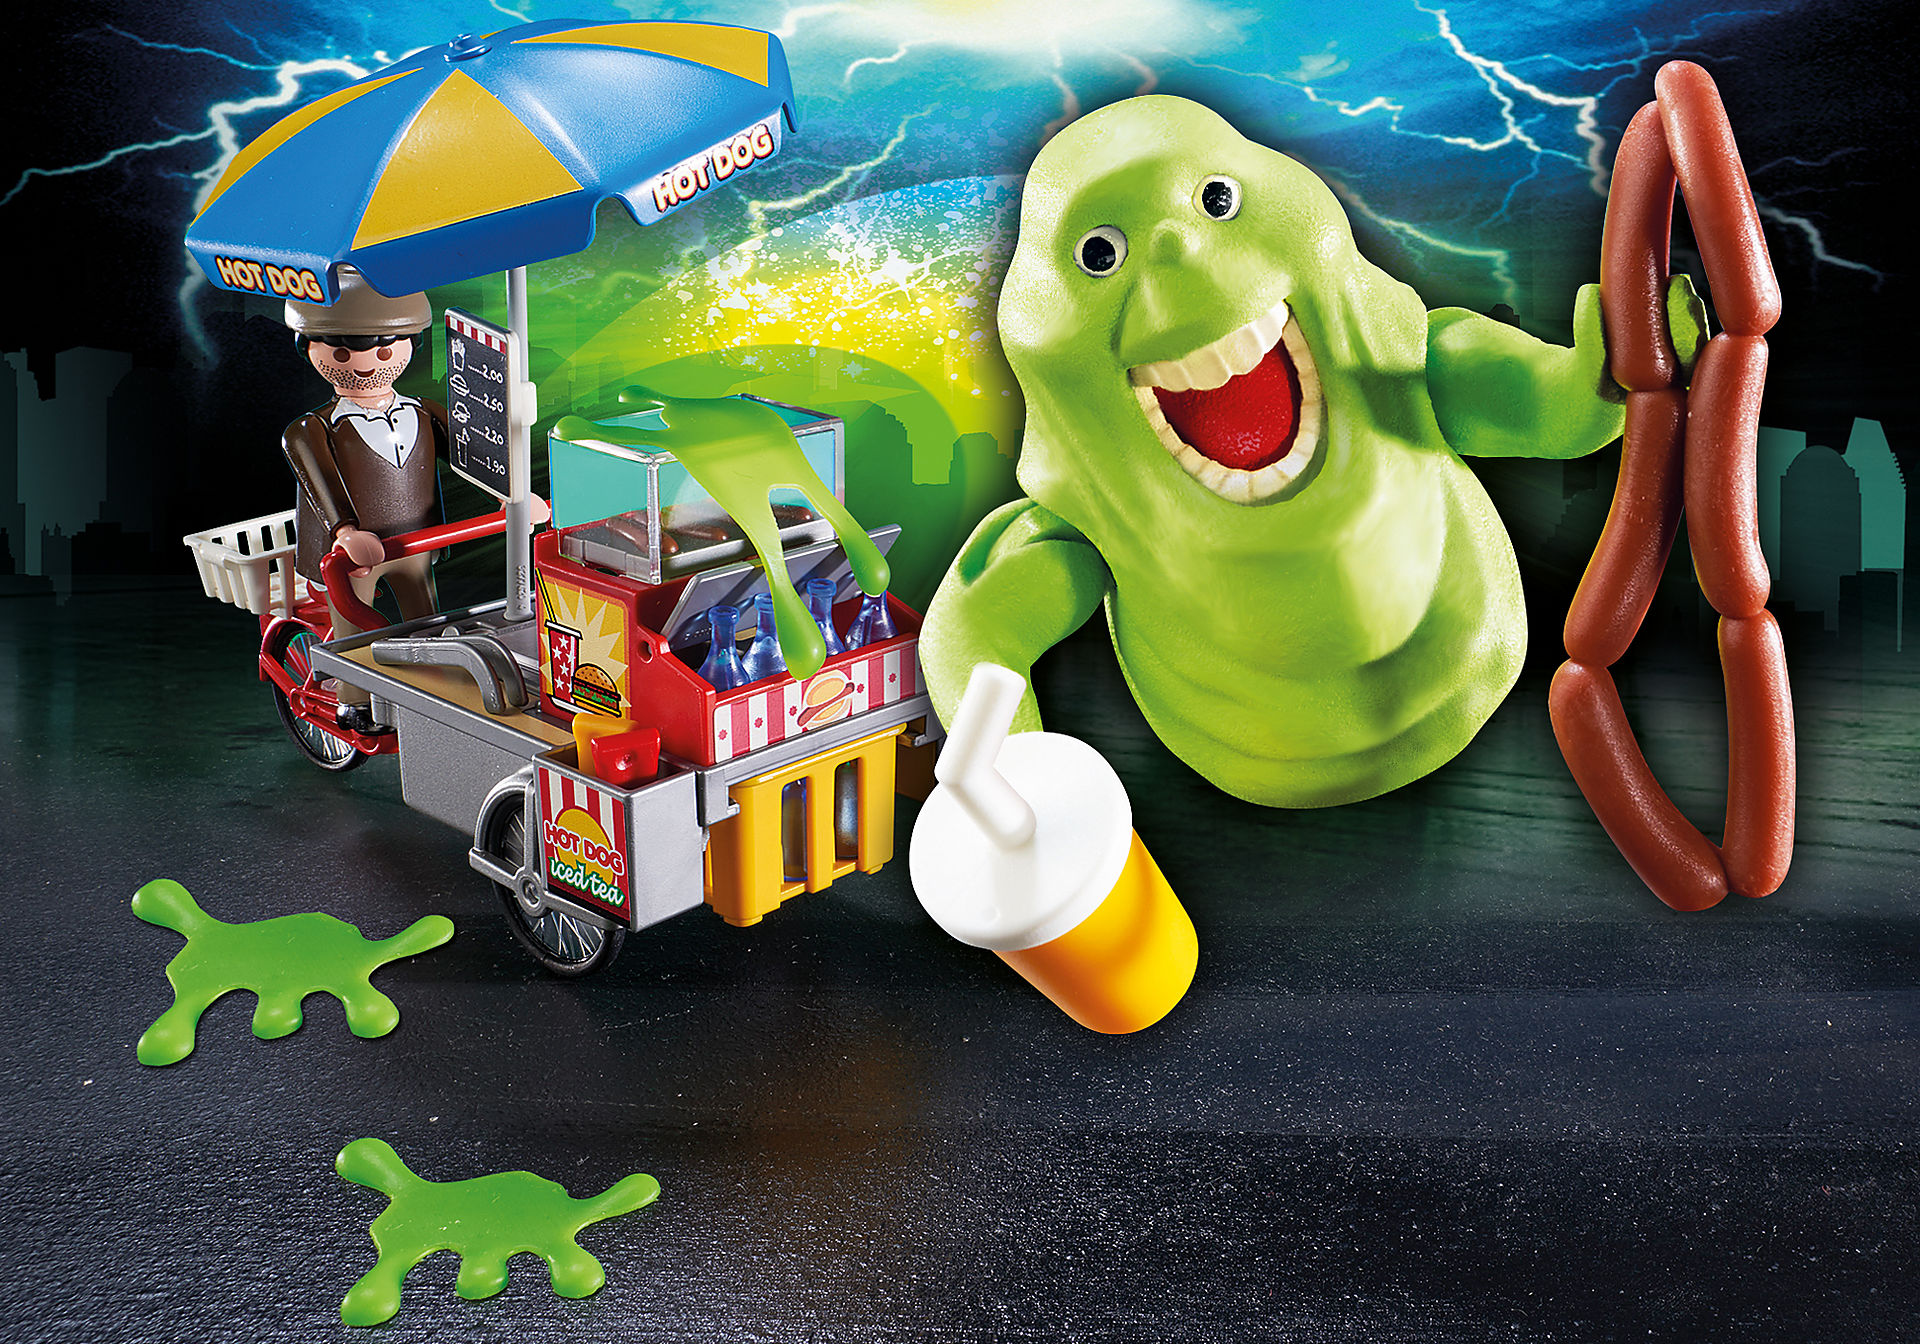 http://media.playmobil.com/i/playmobil/9222_product_extra1/Slimer con Stand de Hot Dog